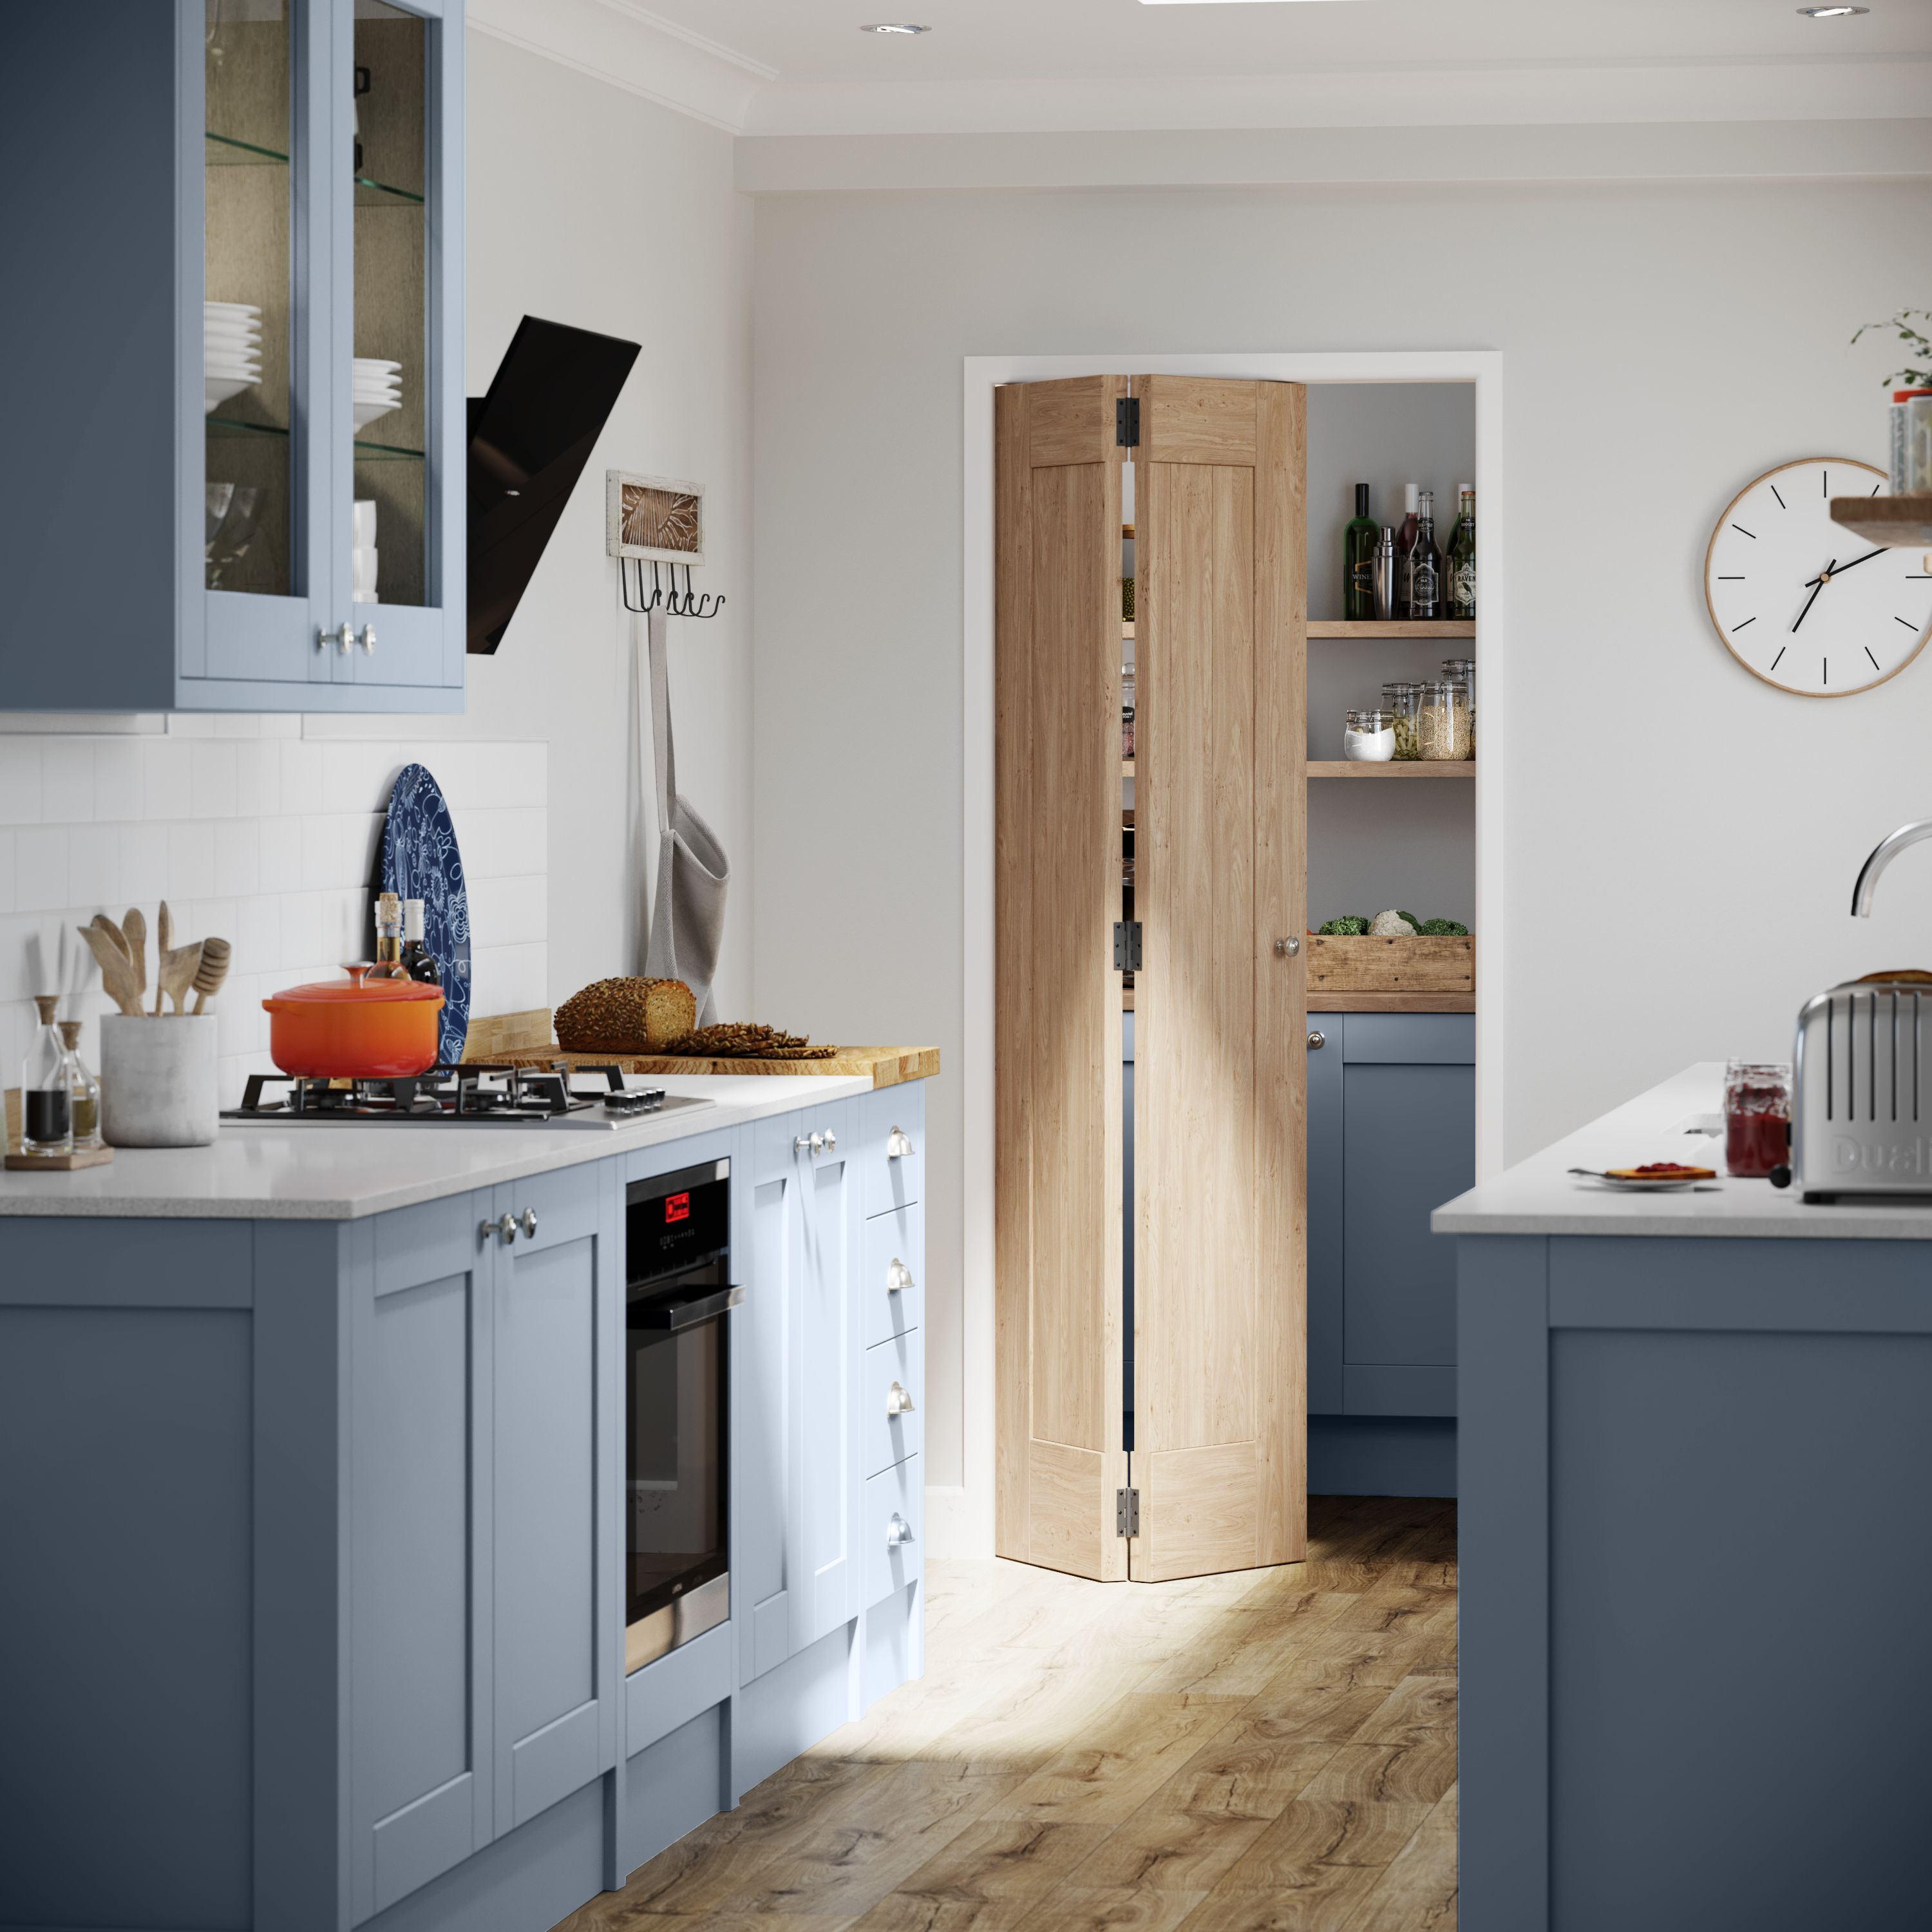 A Modern Bright And Airy Kitchen With Wooden Details: Inspired By Costal Living, Our NEW Fairford Blue Kitchen